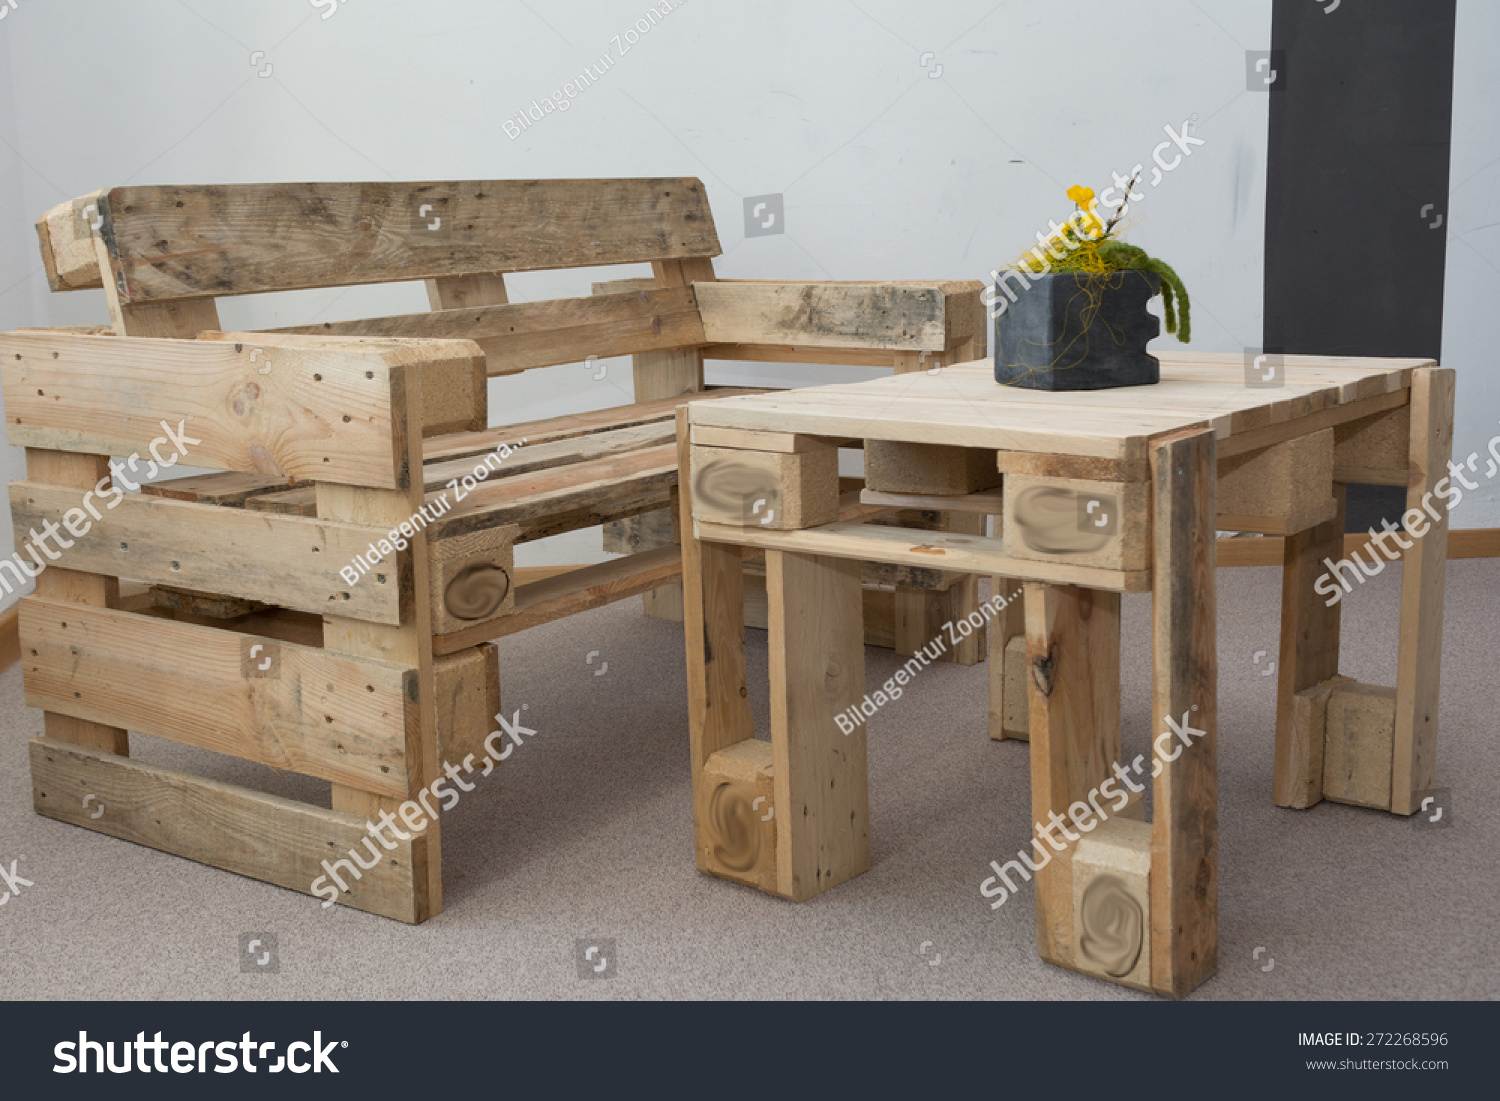 Upcycling Furniture From Pallets